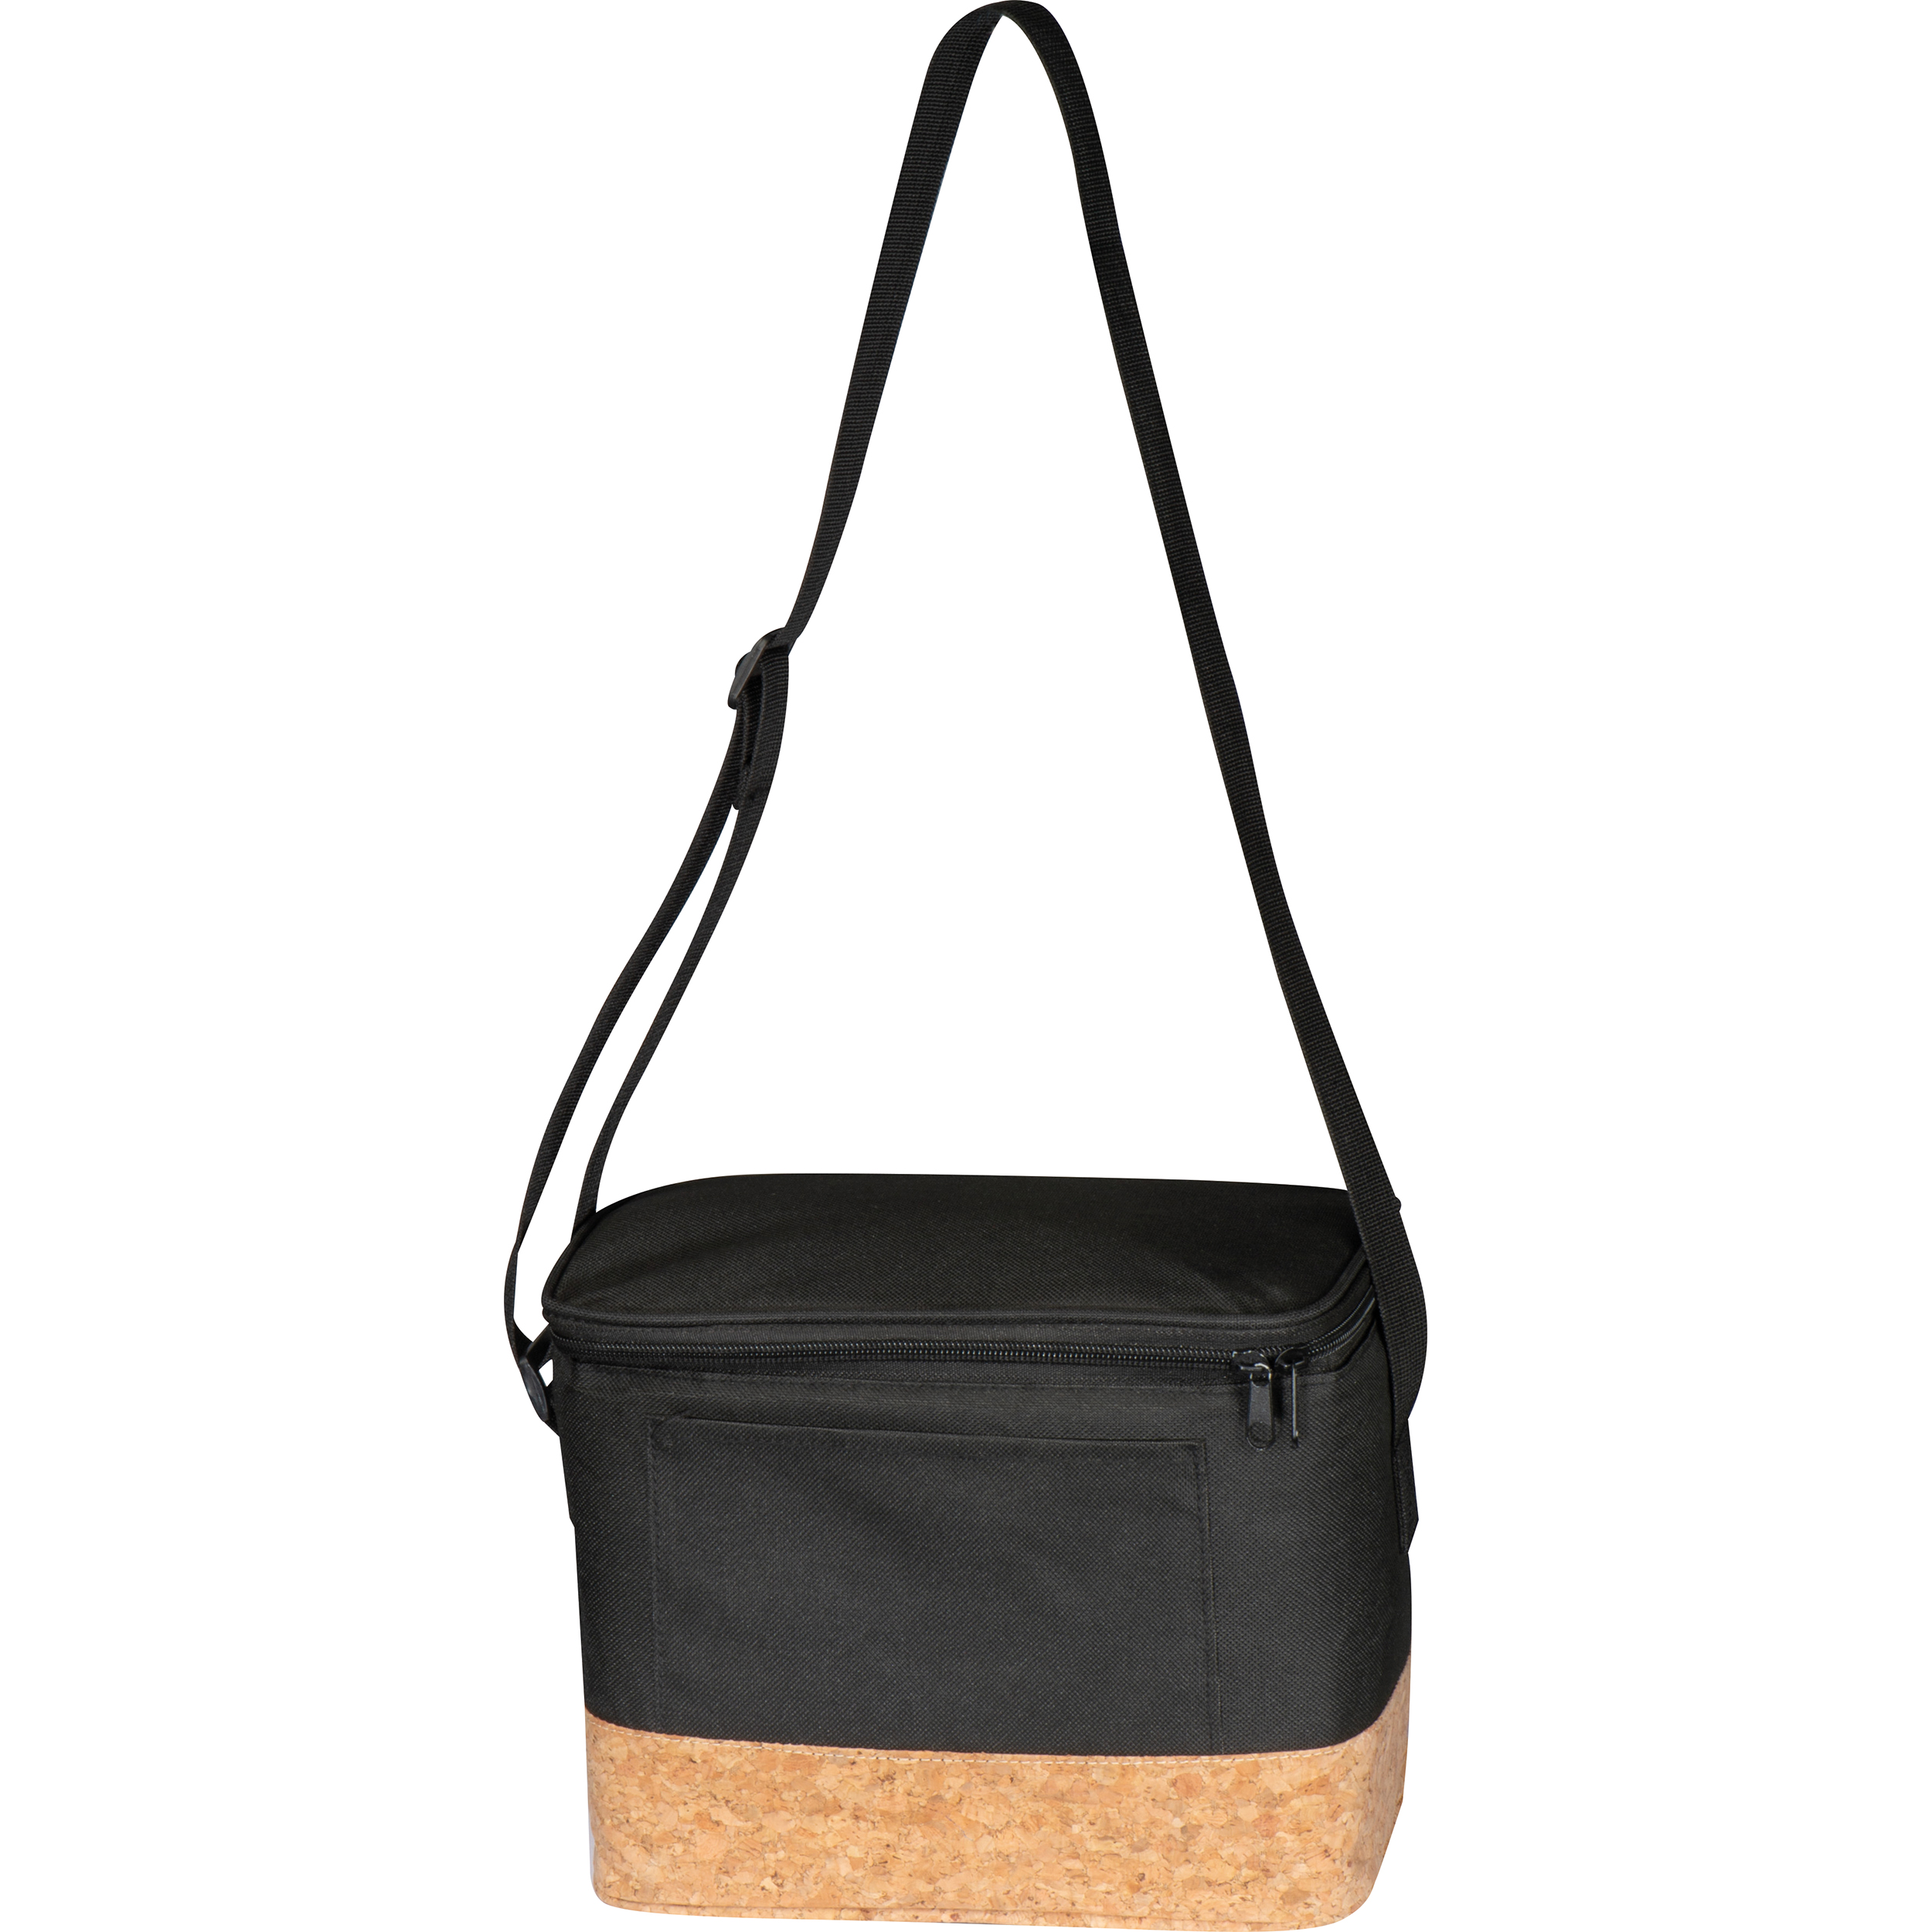 Polyester cooler bag with cork bottom